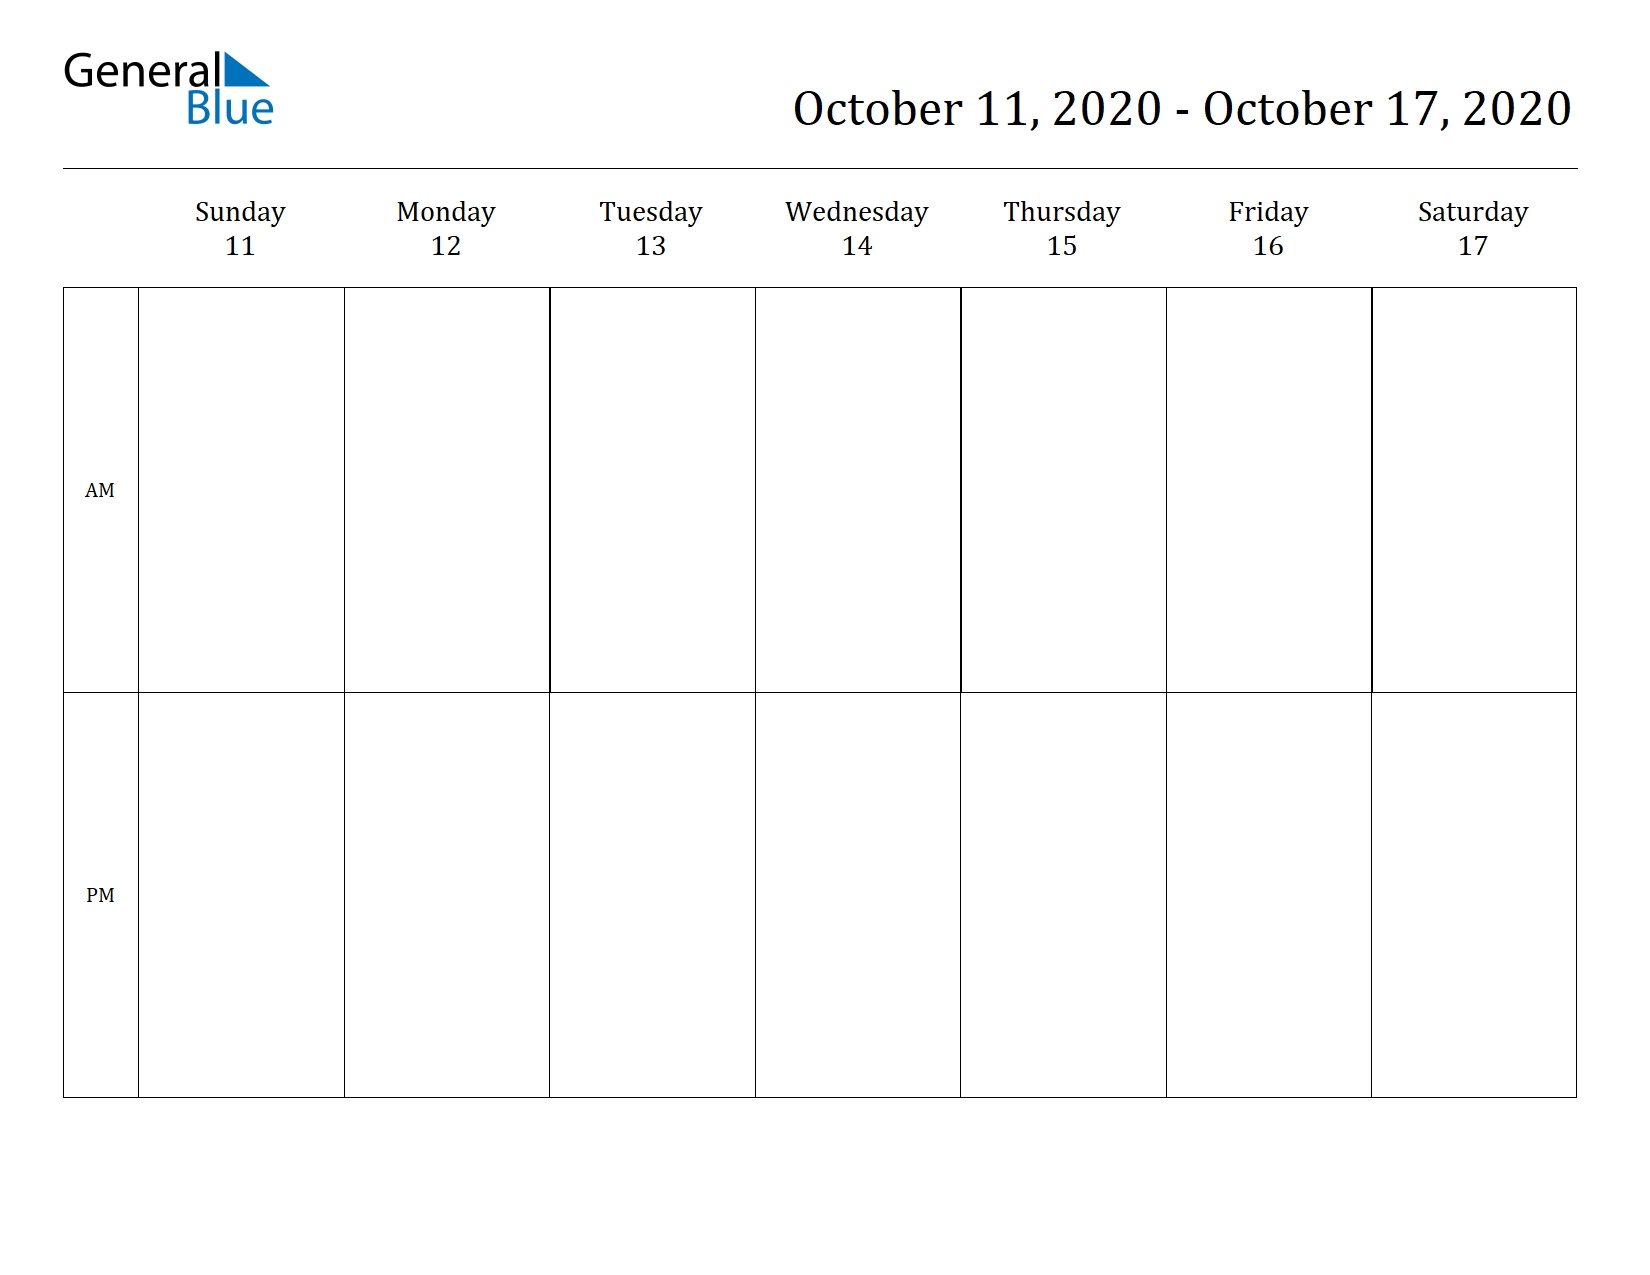 Weekly Calendar October 11, 2020 To October 17, 2020